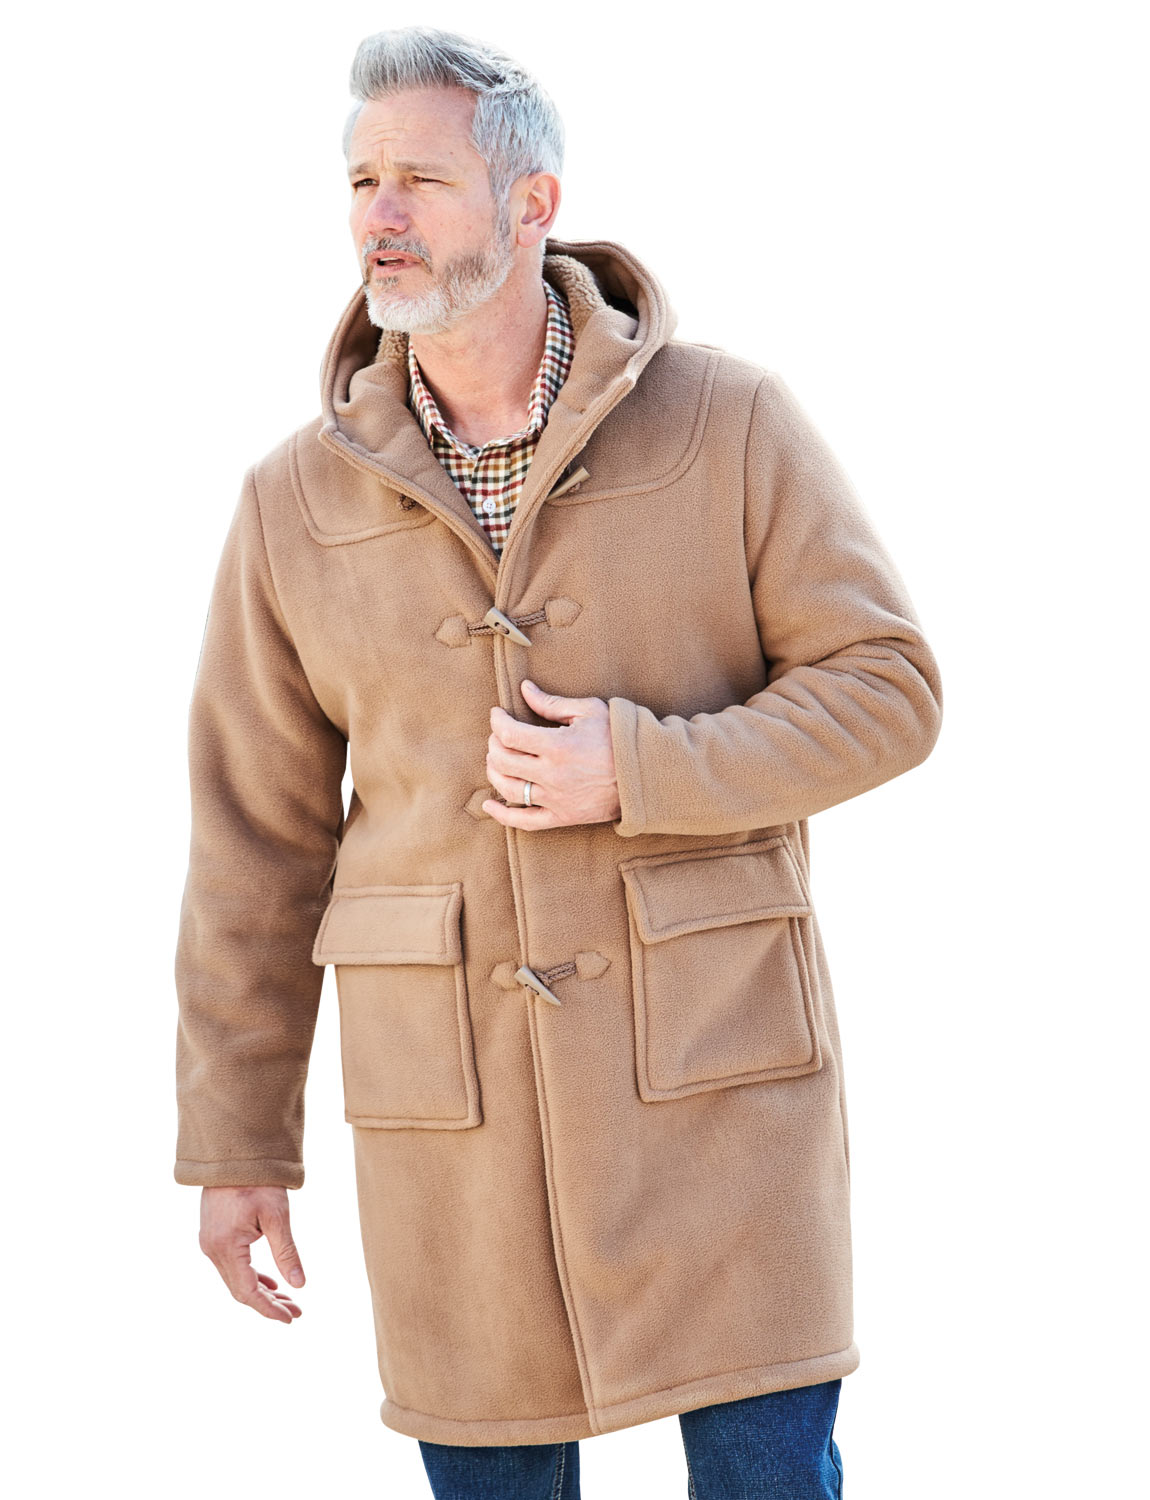 The official outlet for Original Montgomery duffle coats, bringing you exclusive discounts on a range of styles. Browse our collection of men's duffle coats & enjoy luxury for less.